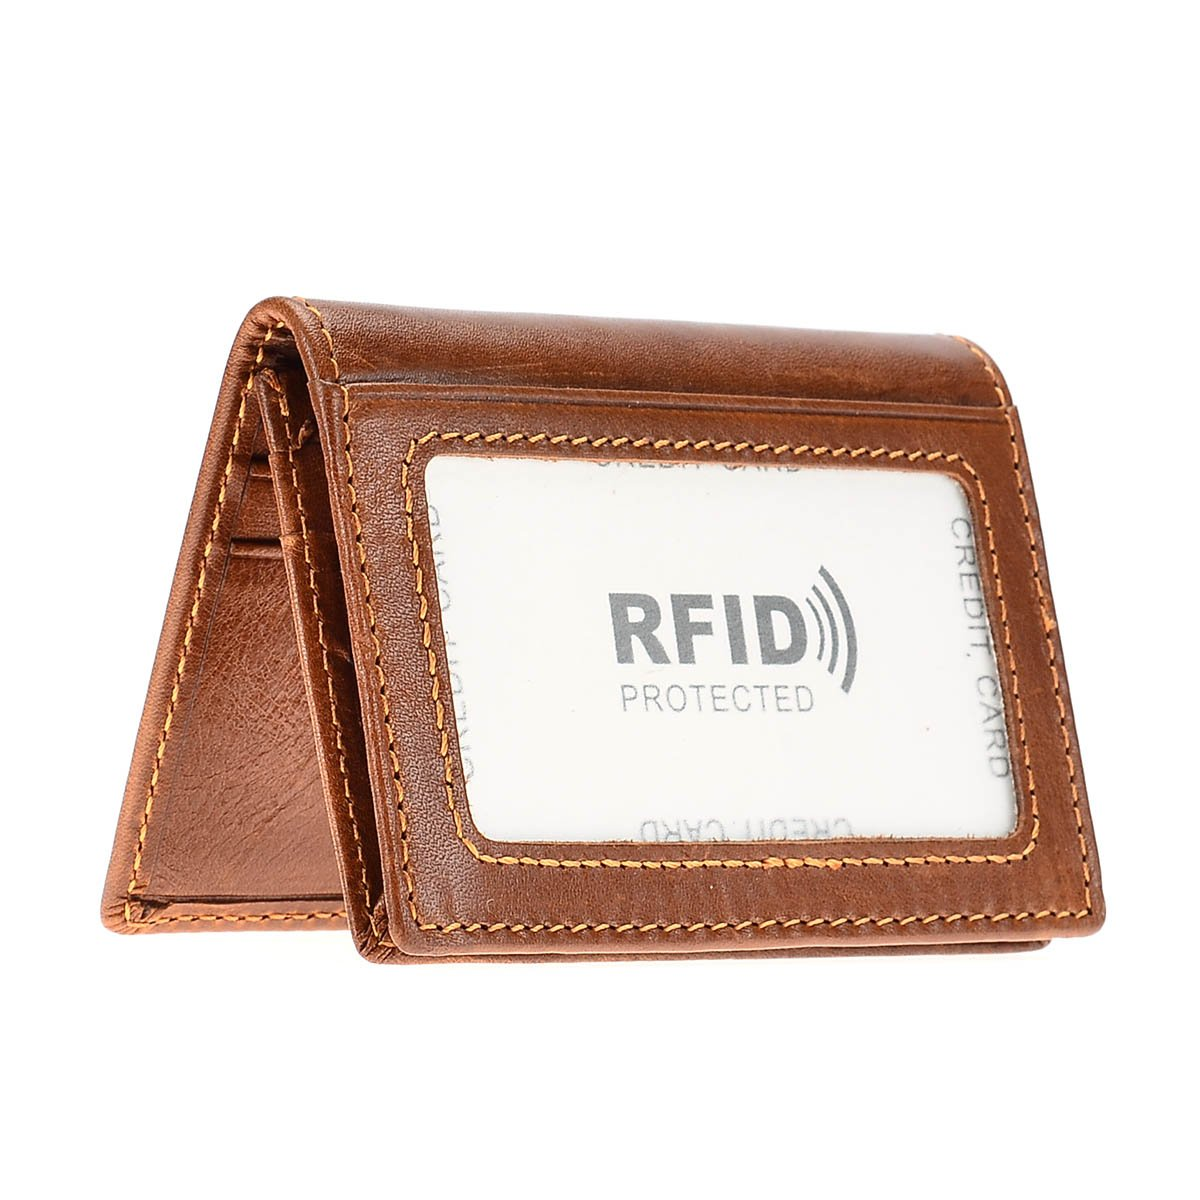 HAWEE Men's Bifold Front Pocket Wallet Genuine Leather RFID Blocking Card Billfold Black HW-CSAX06031Black